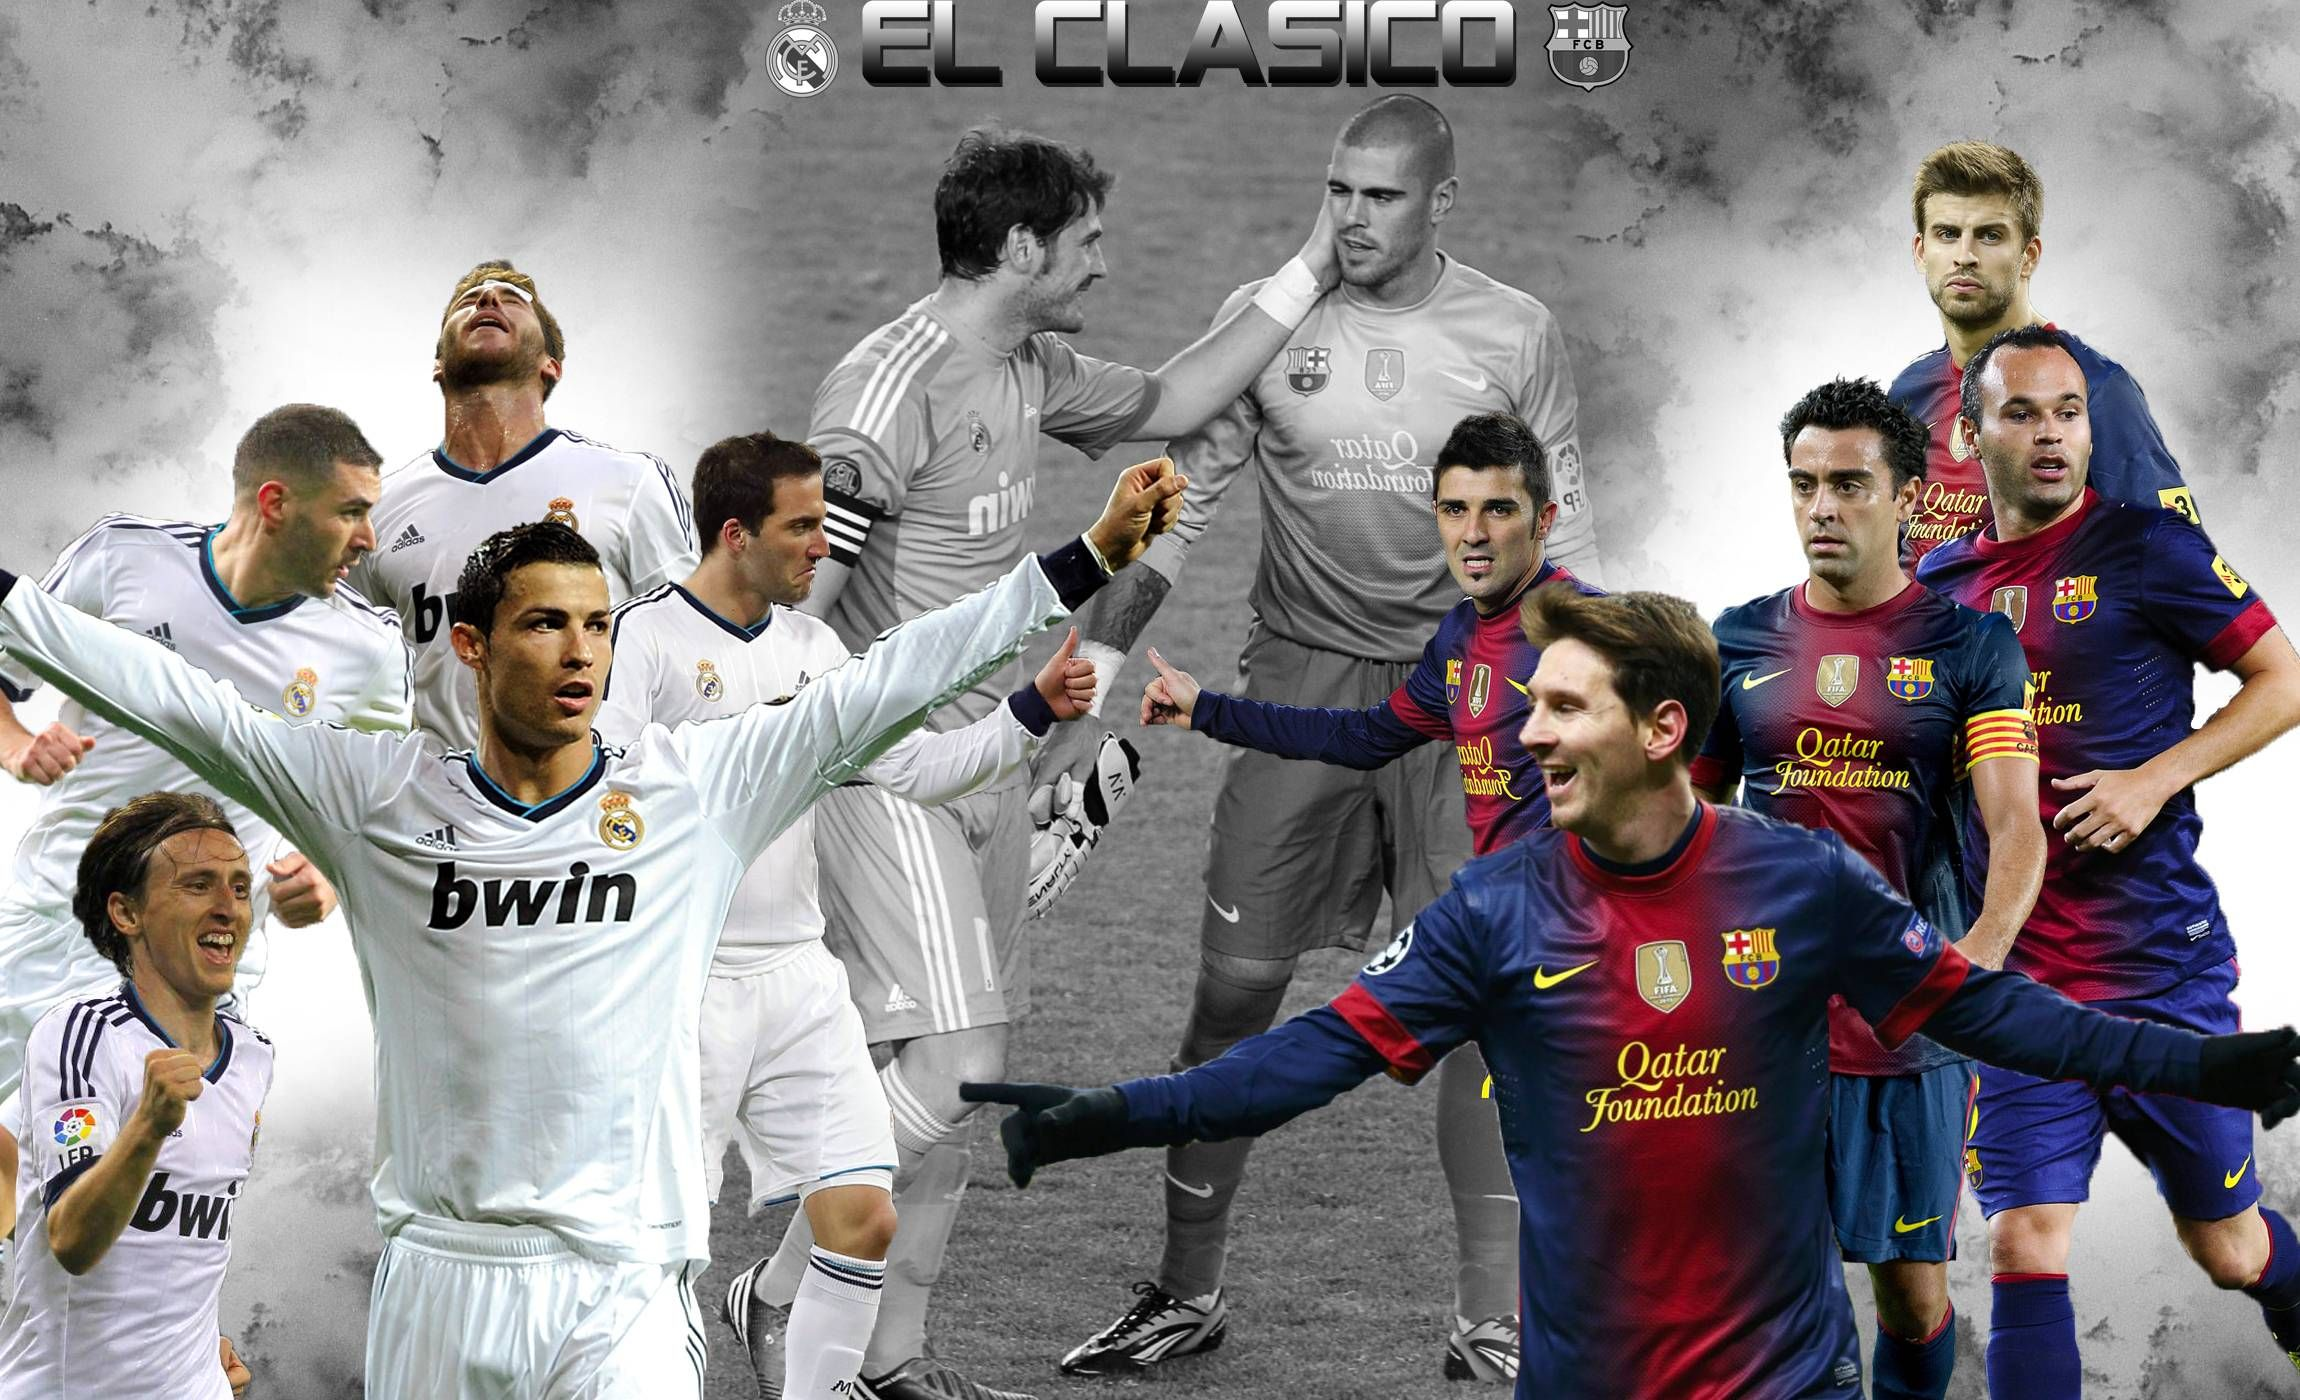 El Clasico History Who Has The Most Wins In El Clasico In 2021 History Sports Let It Be